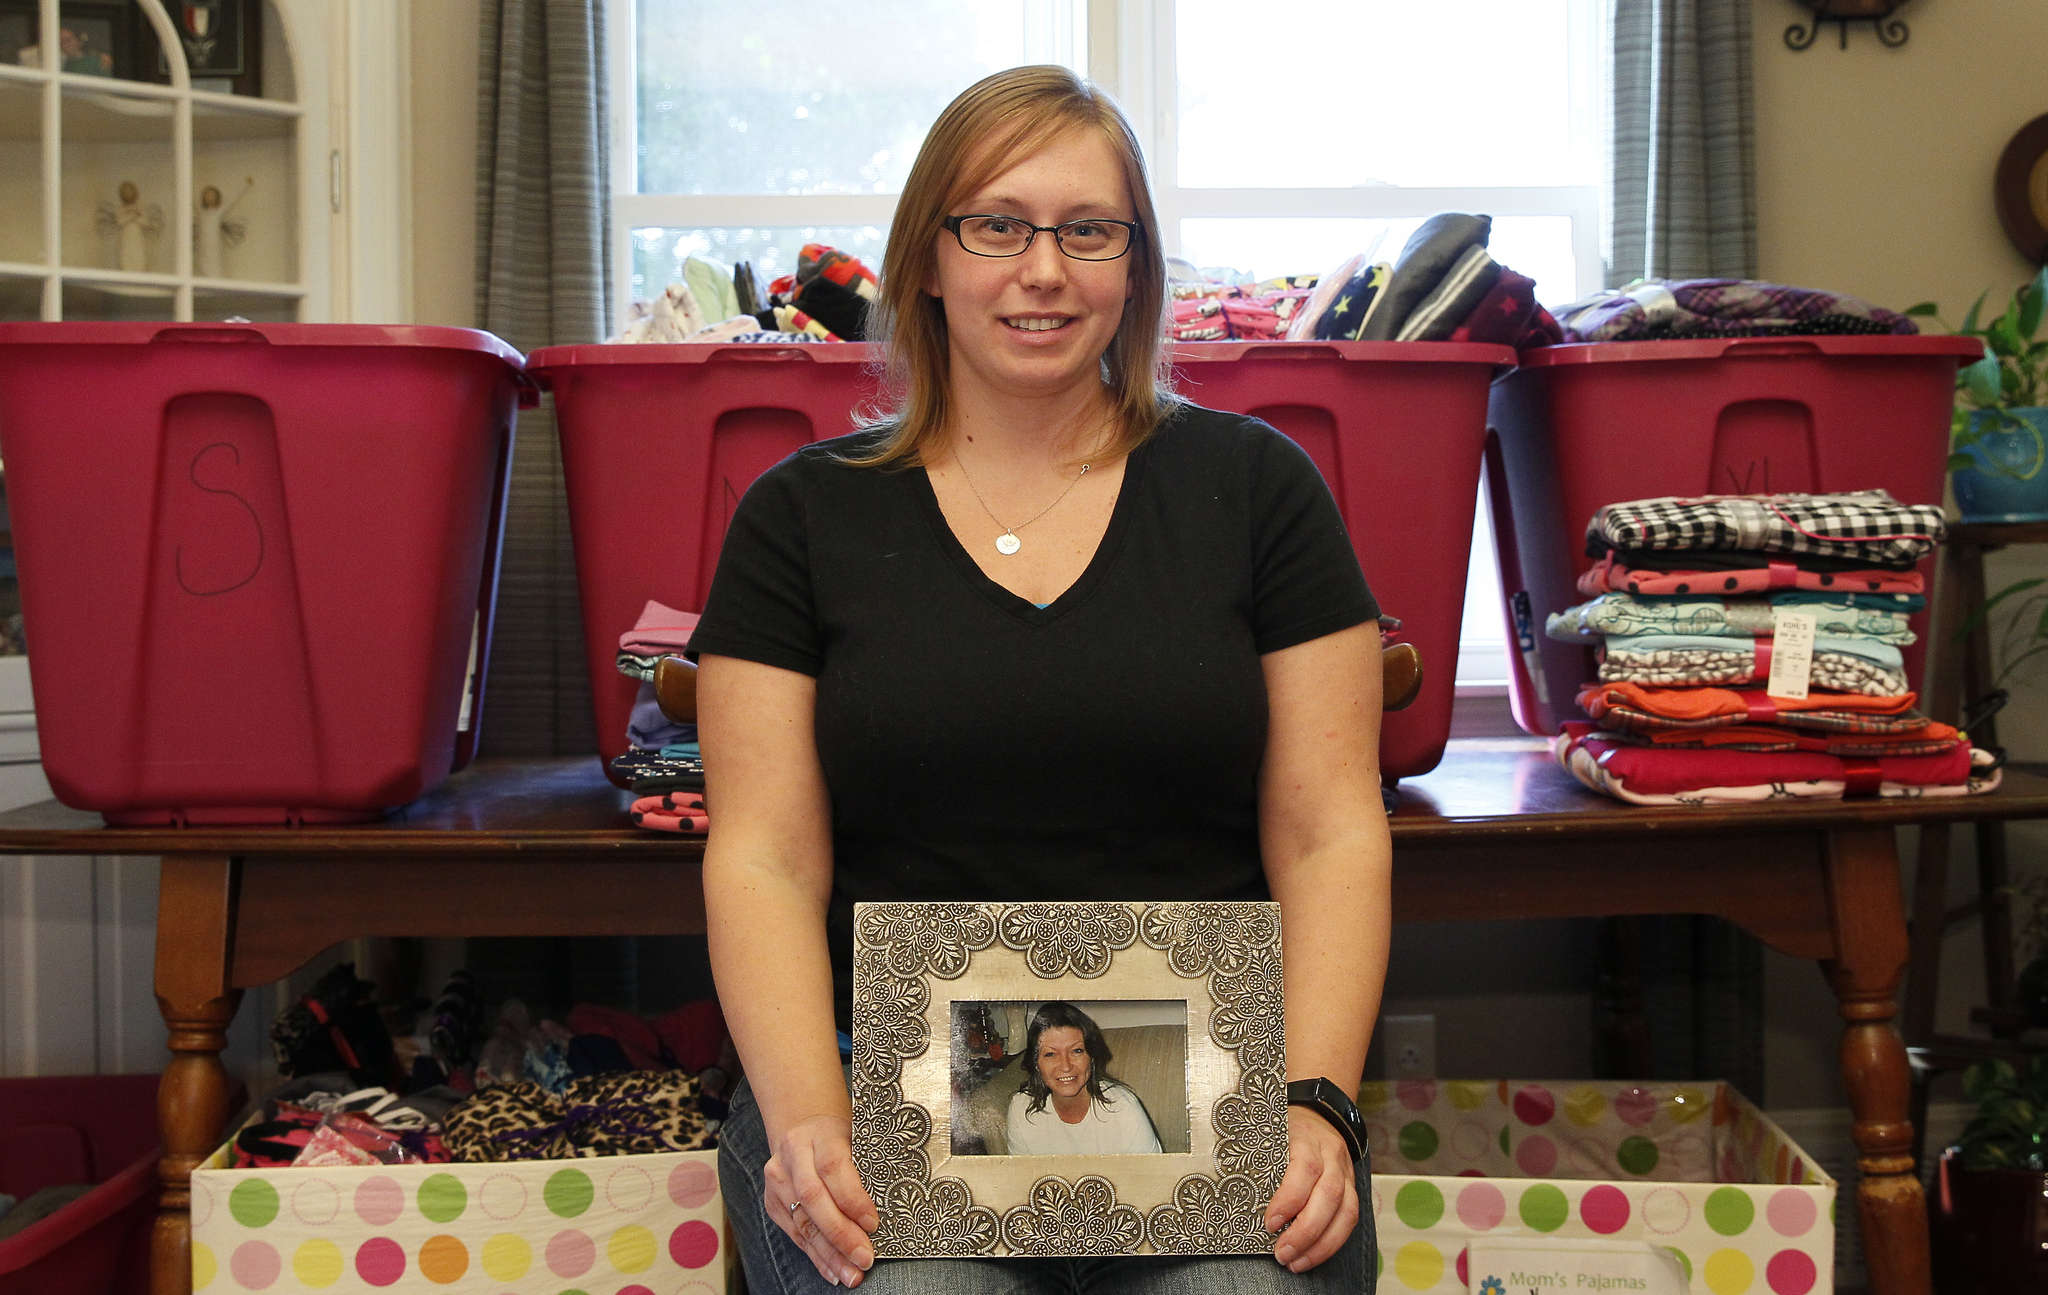 Crystal Allen holds a photo of her mother, Laura, who inspired Mom´s Pajamas effort.